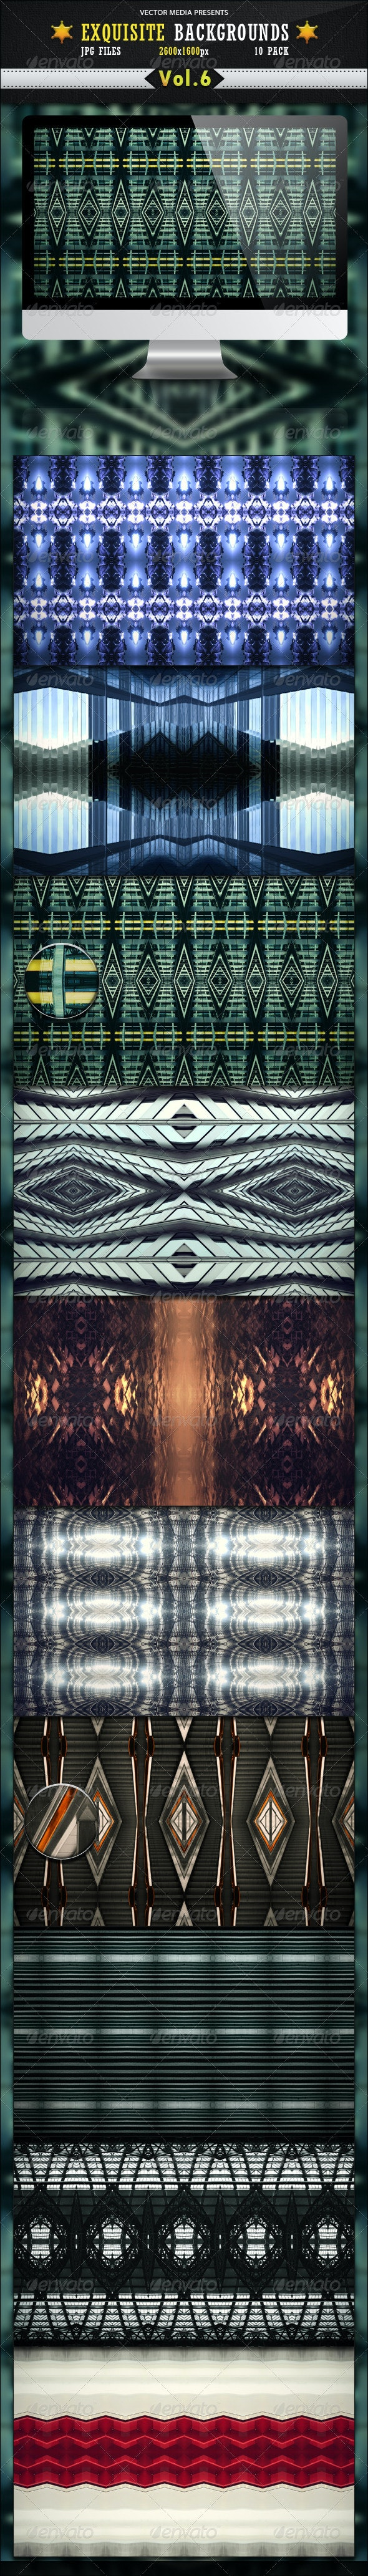 Exquisite Backgrounds - Vol 6 - Backgrounds Graphics